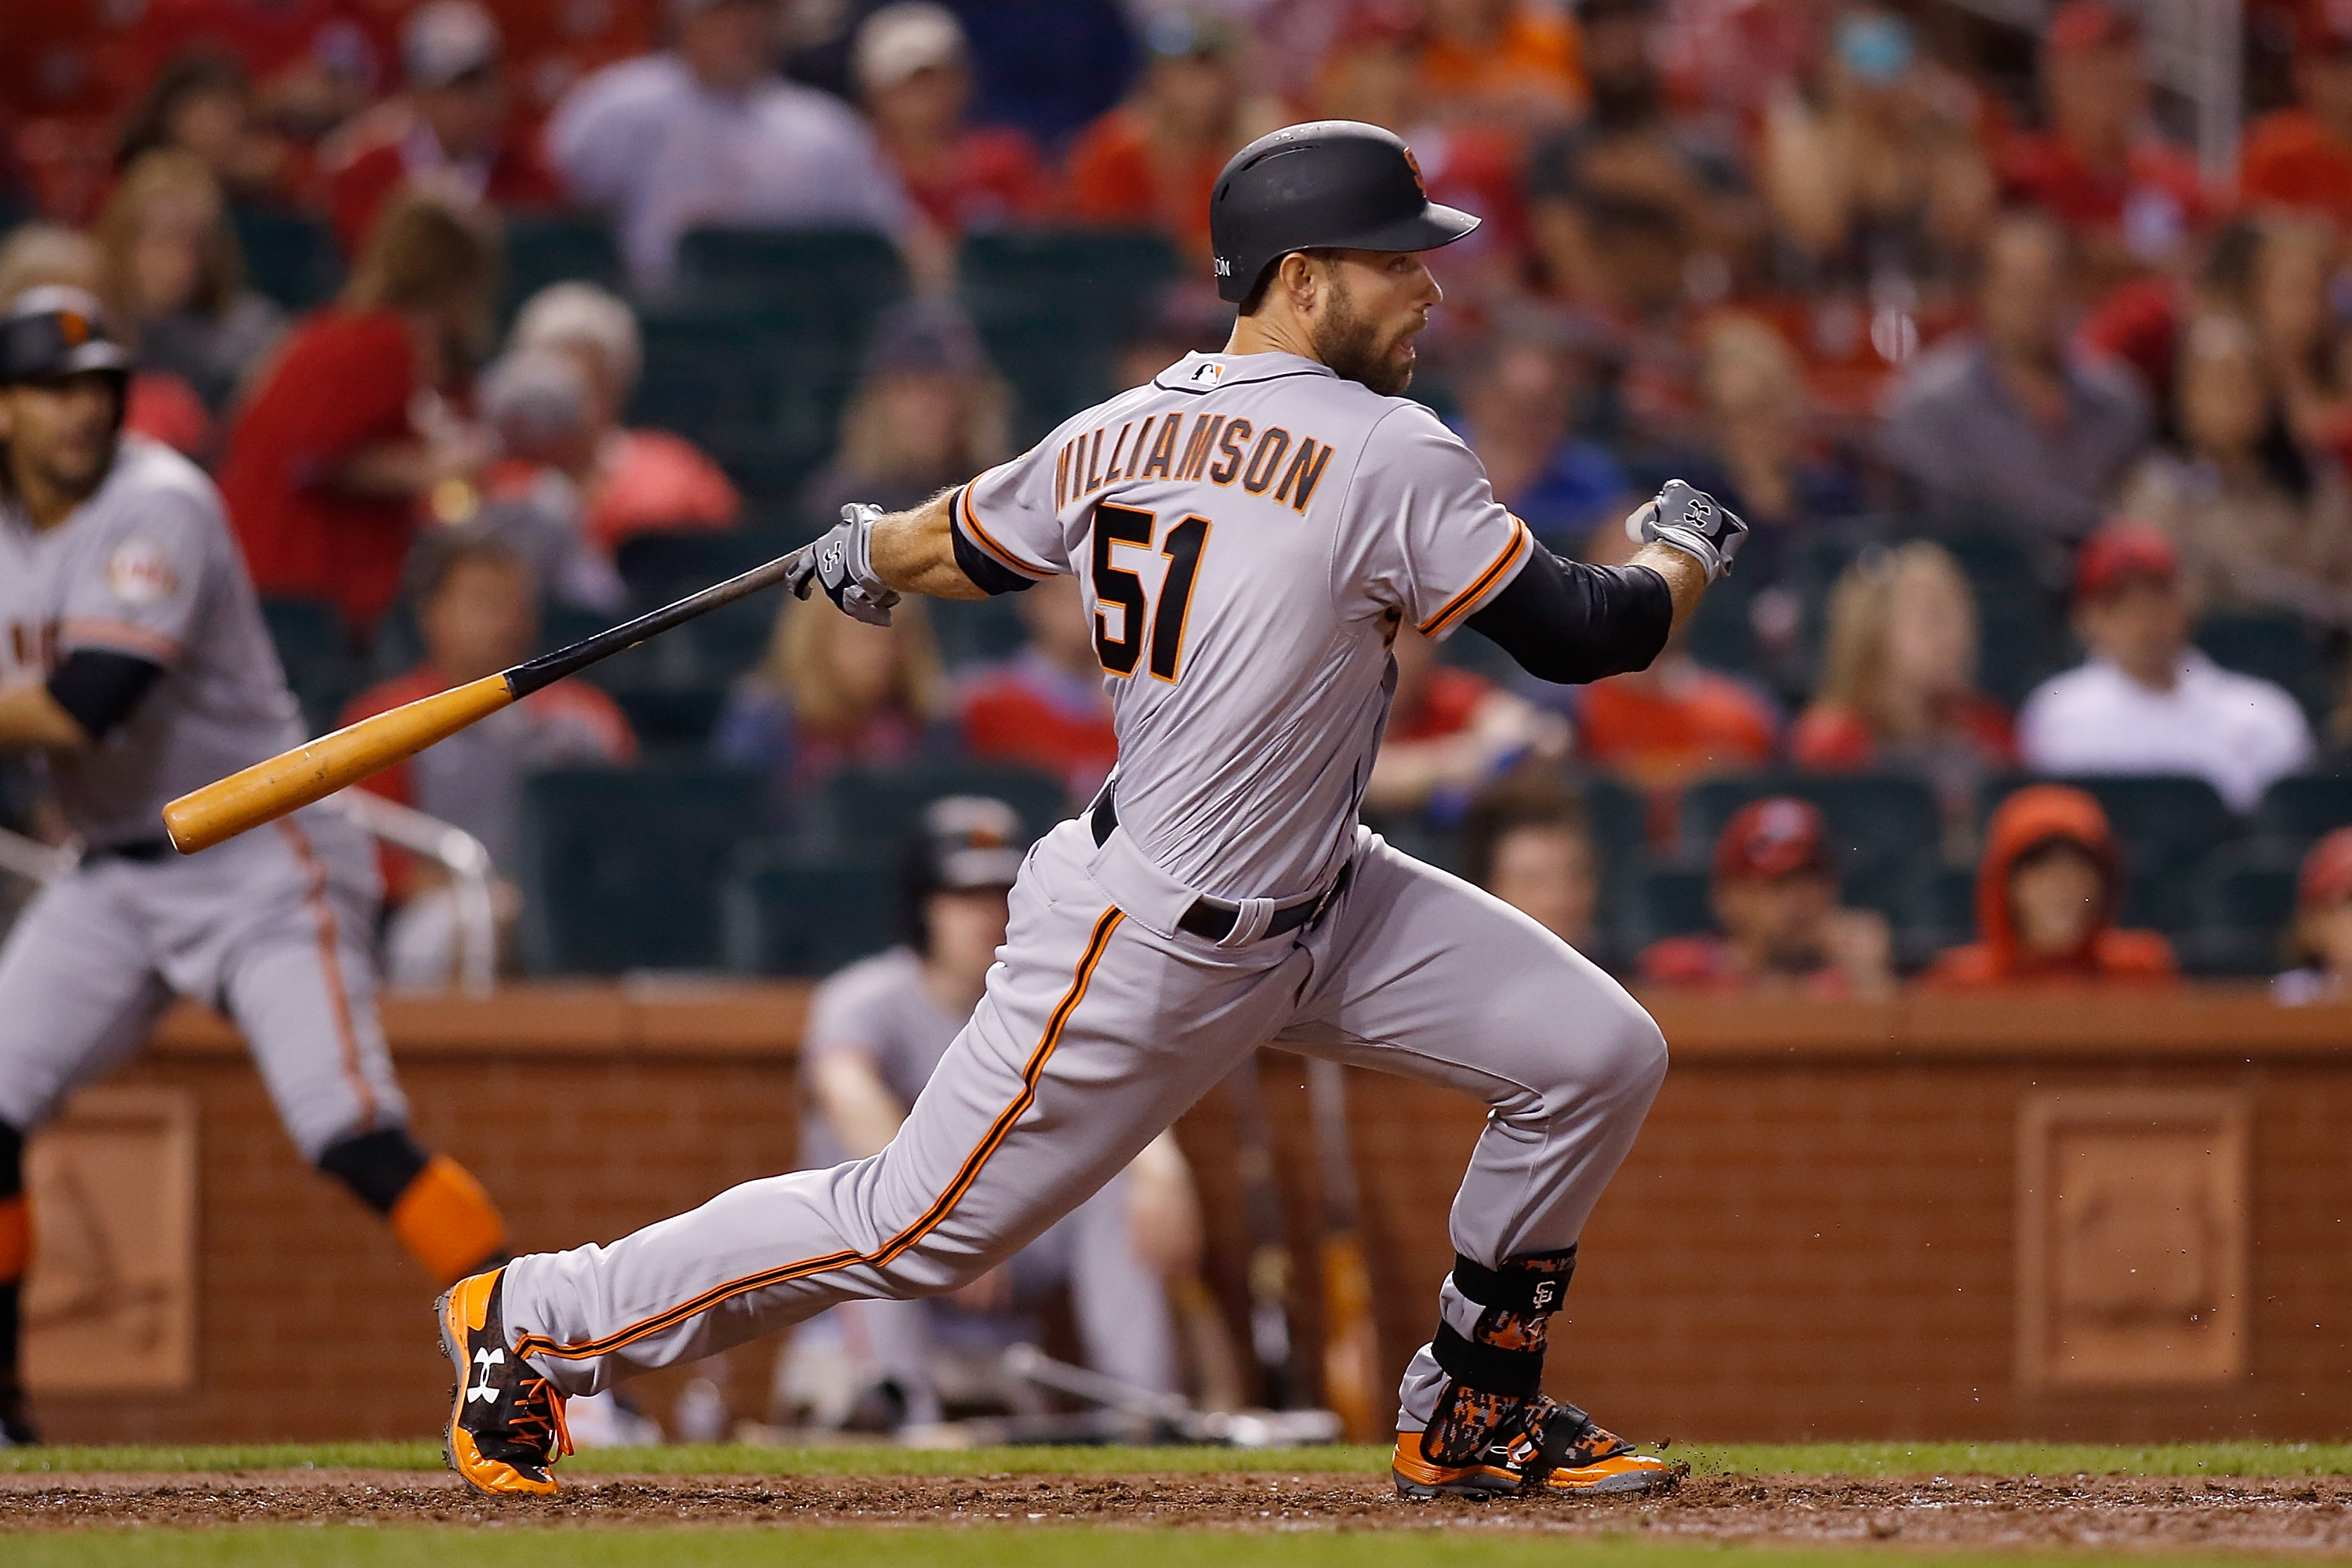 10064751-mlb-san-francisco-giants-at-st.-louis-cardinals